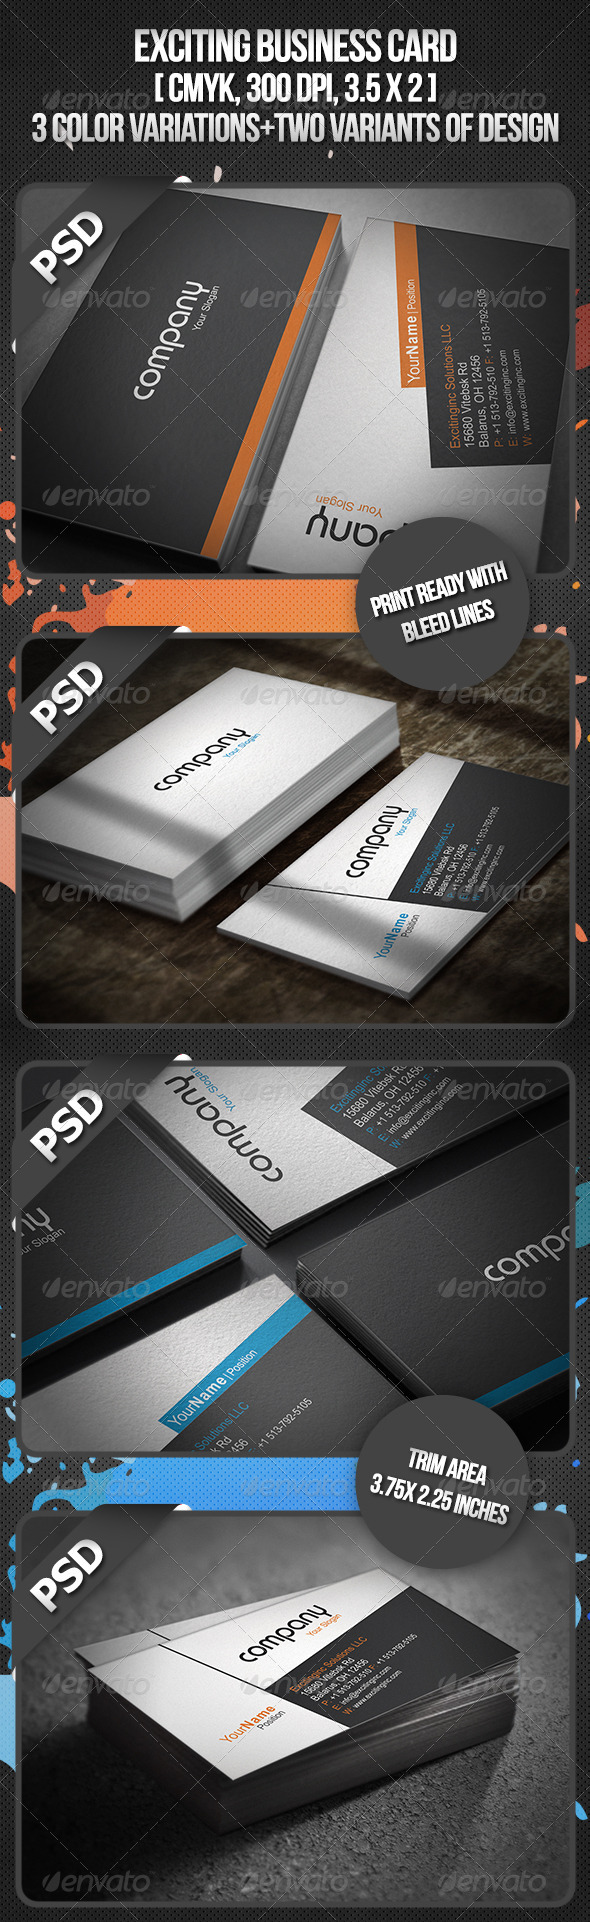 Exciting Business Card - Creative Business Cards